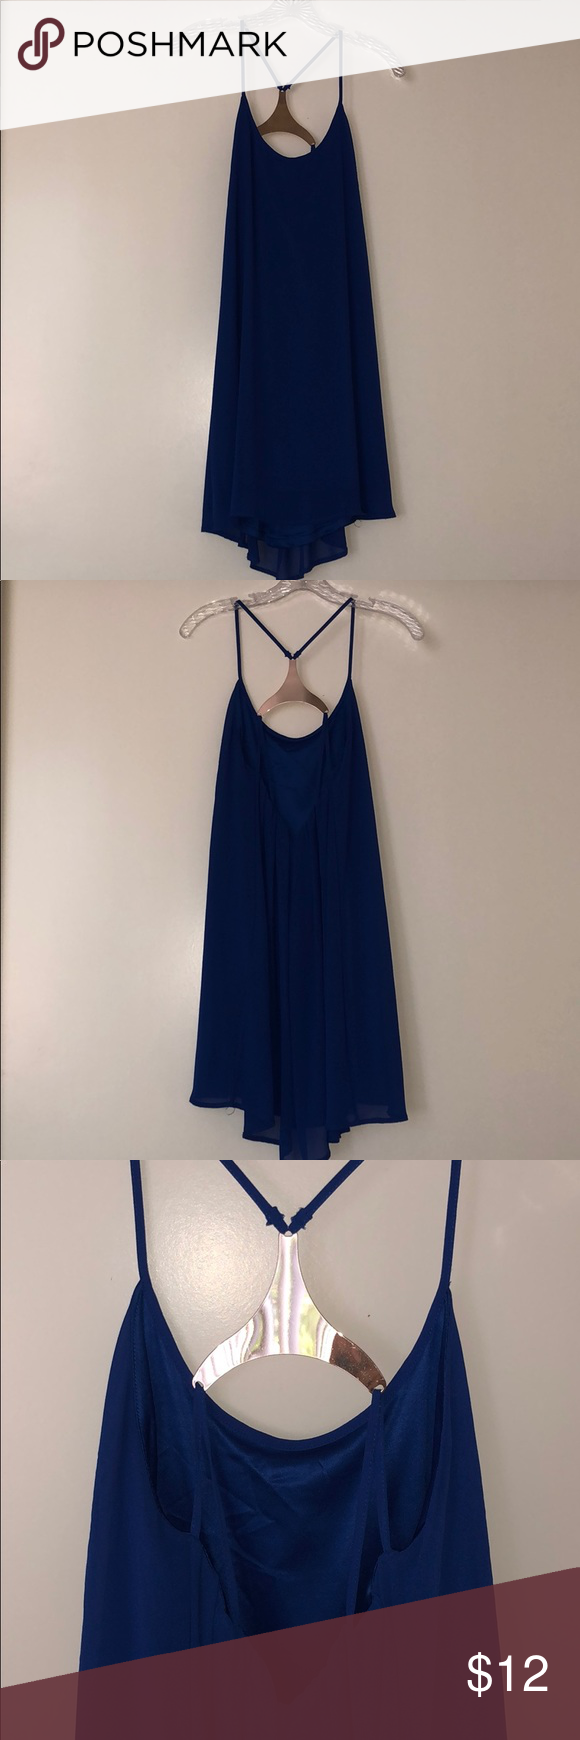 Blue Cocktail Dress w/ Gold Back See headless pic for realistic color / a glimpse of the back. Would not recommend wearing those shoes tho (lmao) Oh My Love Dresses Backless #backlesscocktaildress